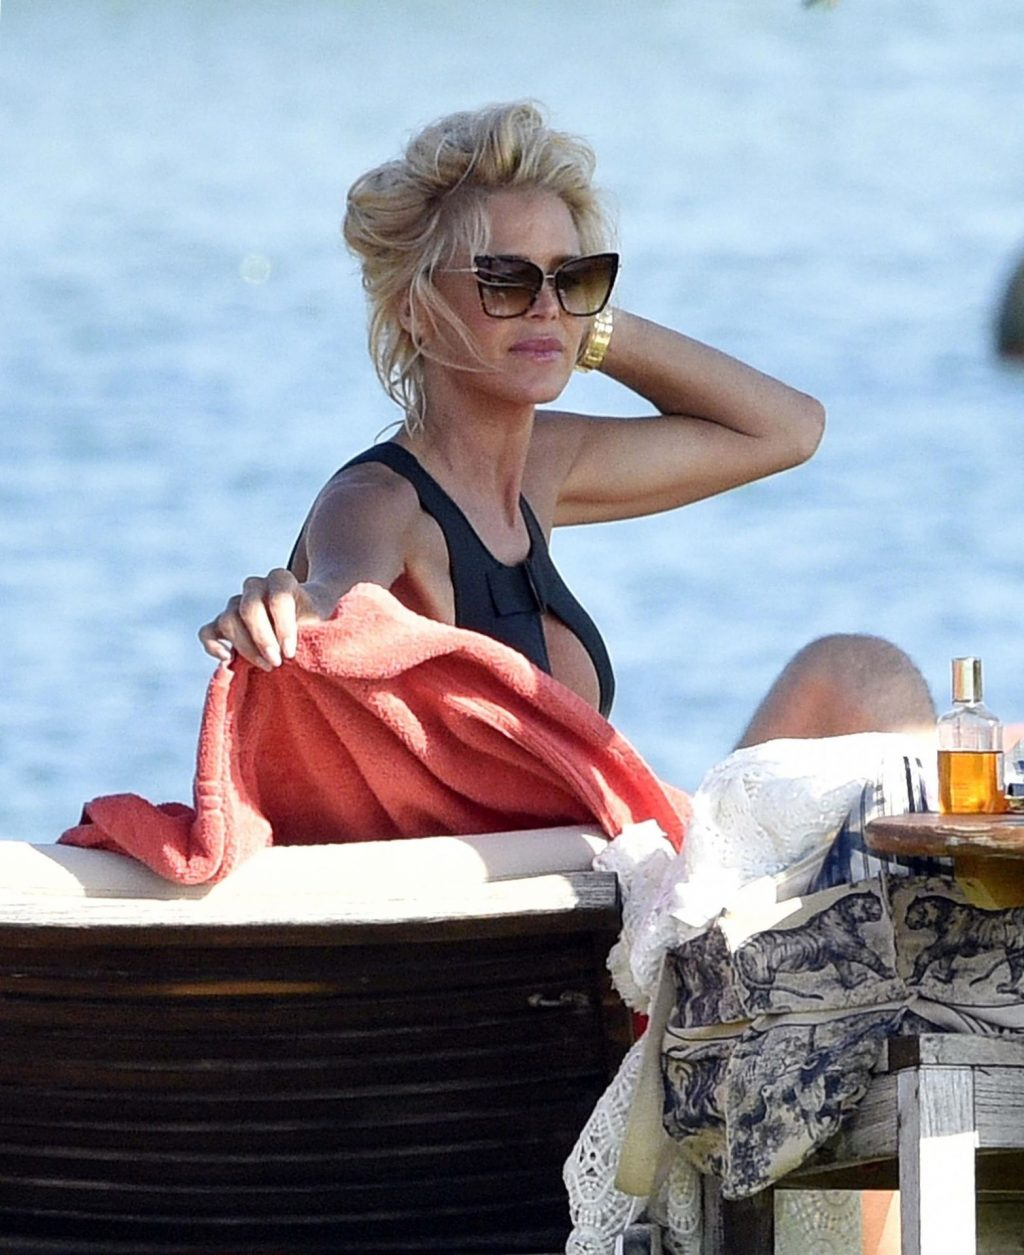 Victoria Silvstedt Shows Off Her Sexy Curves in Sardinia (66 Photos)